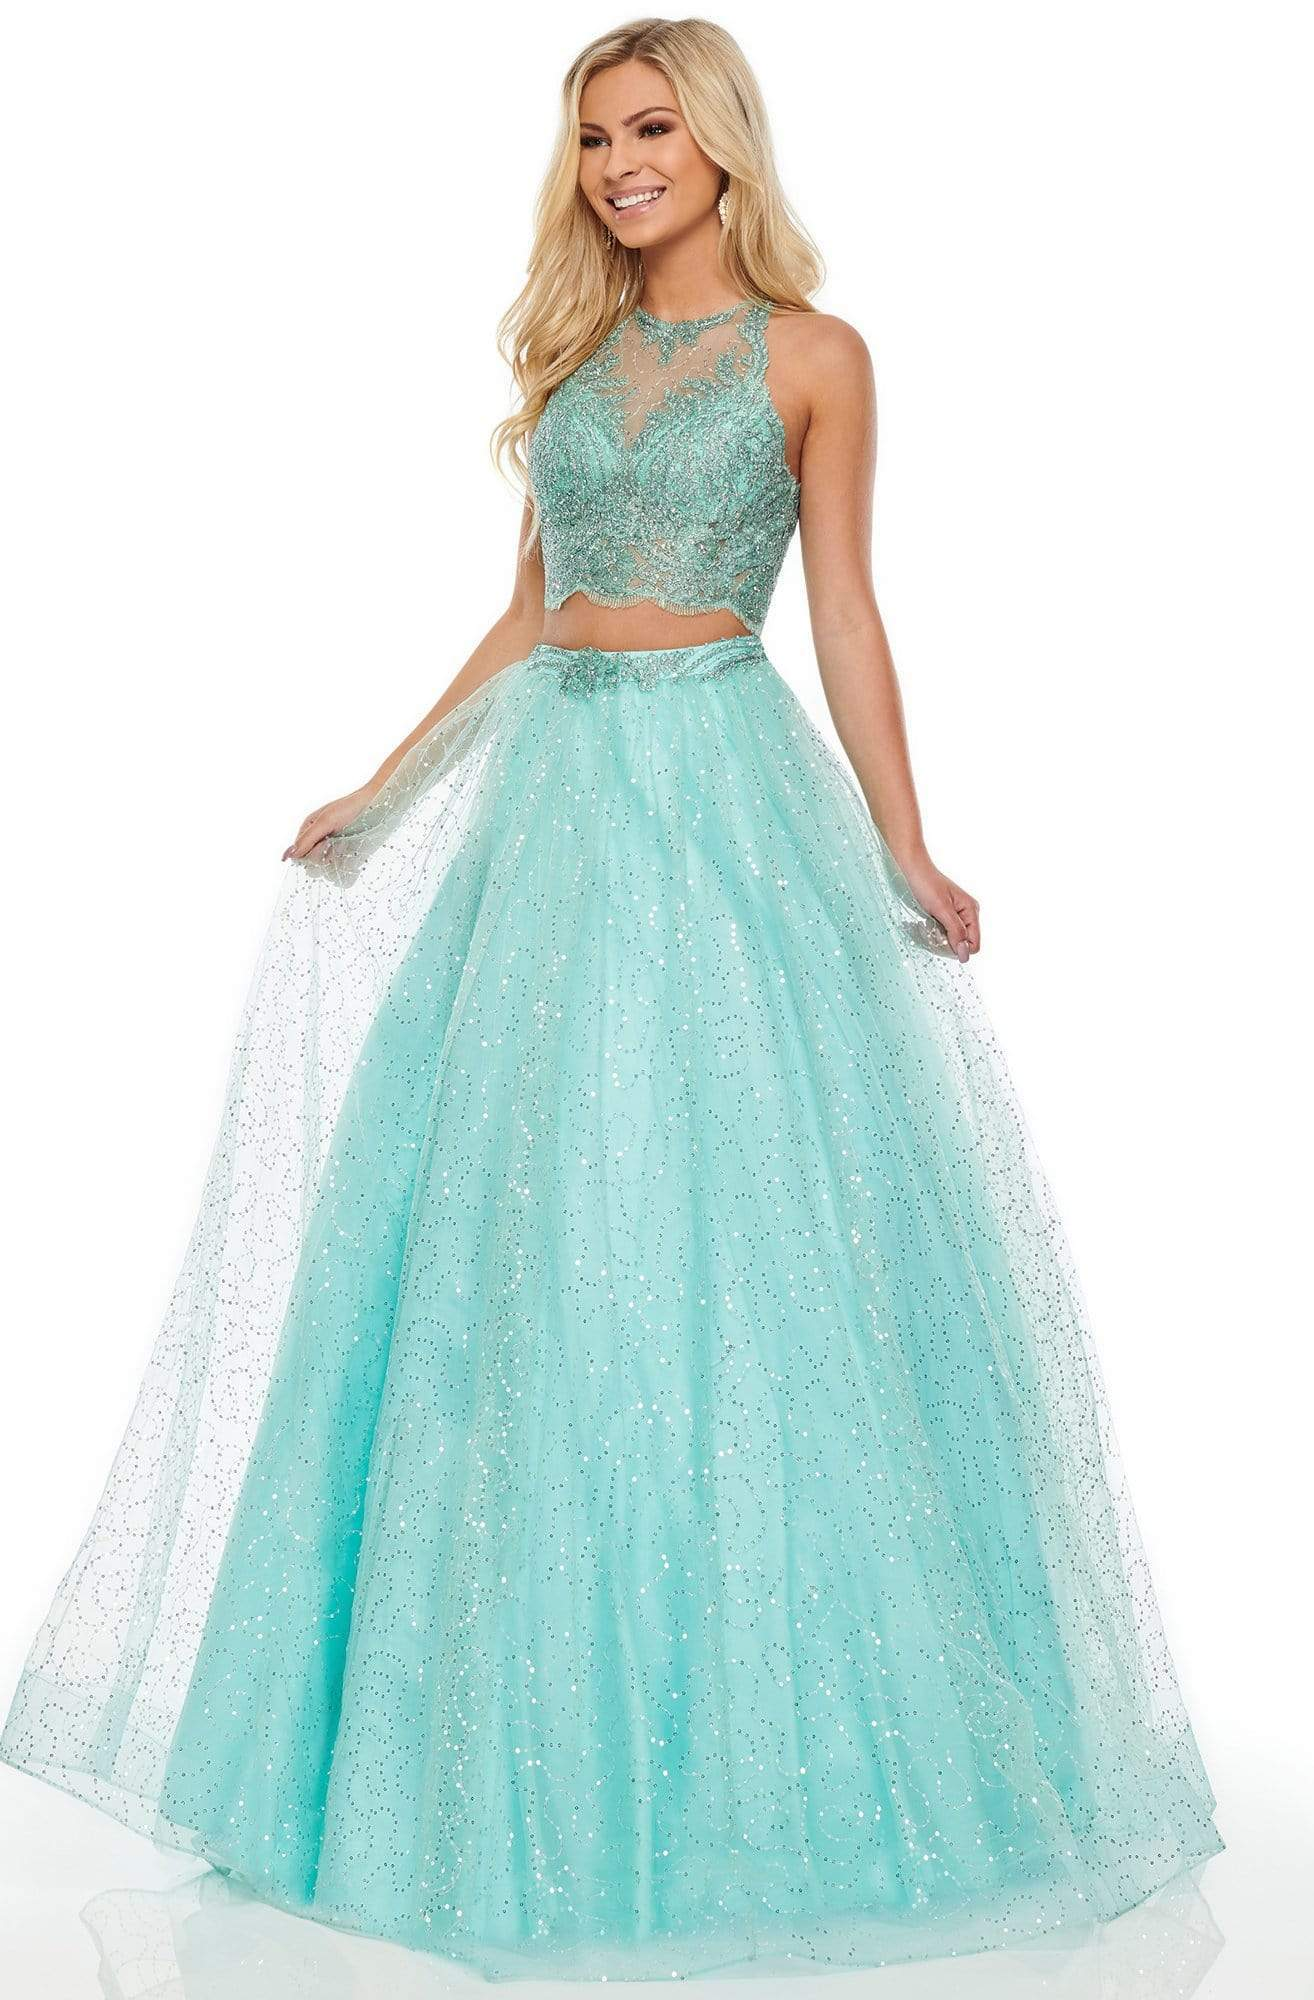 Rachel Allan Prom - 7025 Two-Piece Sequin-Ornate Tulle Gown from Rachel Allan